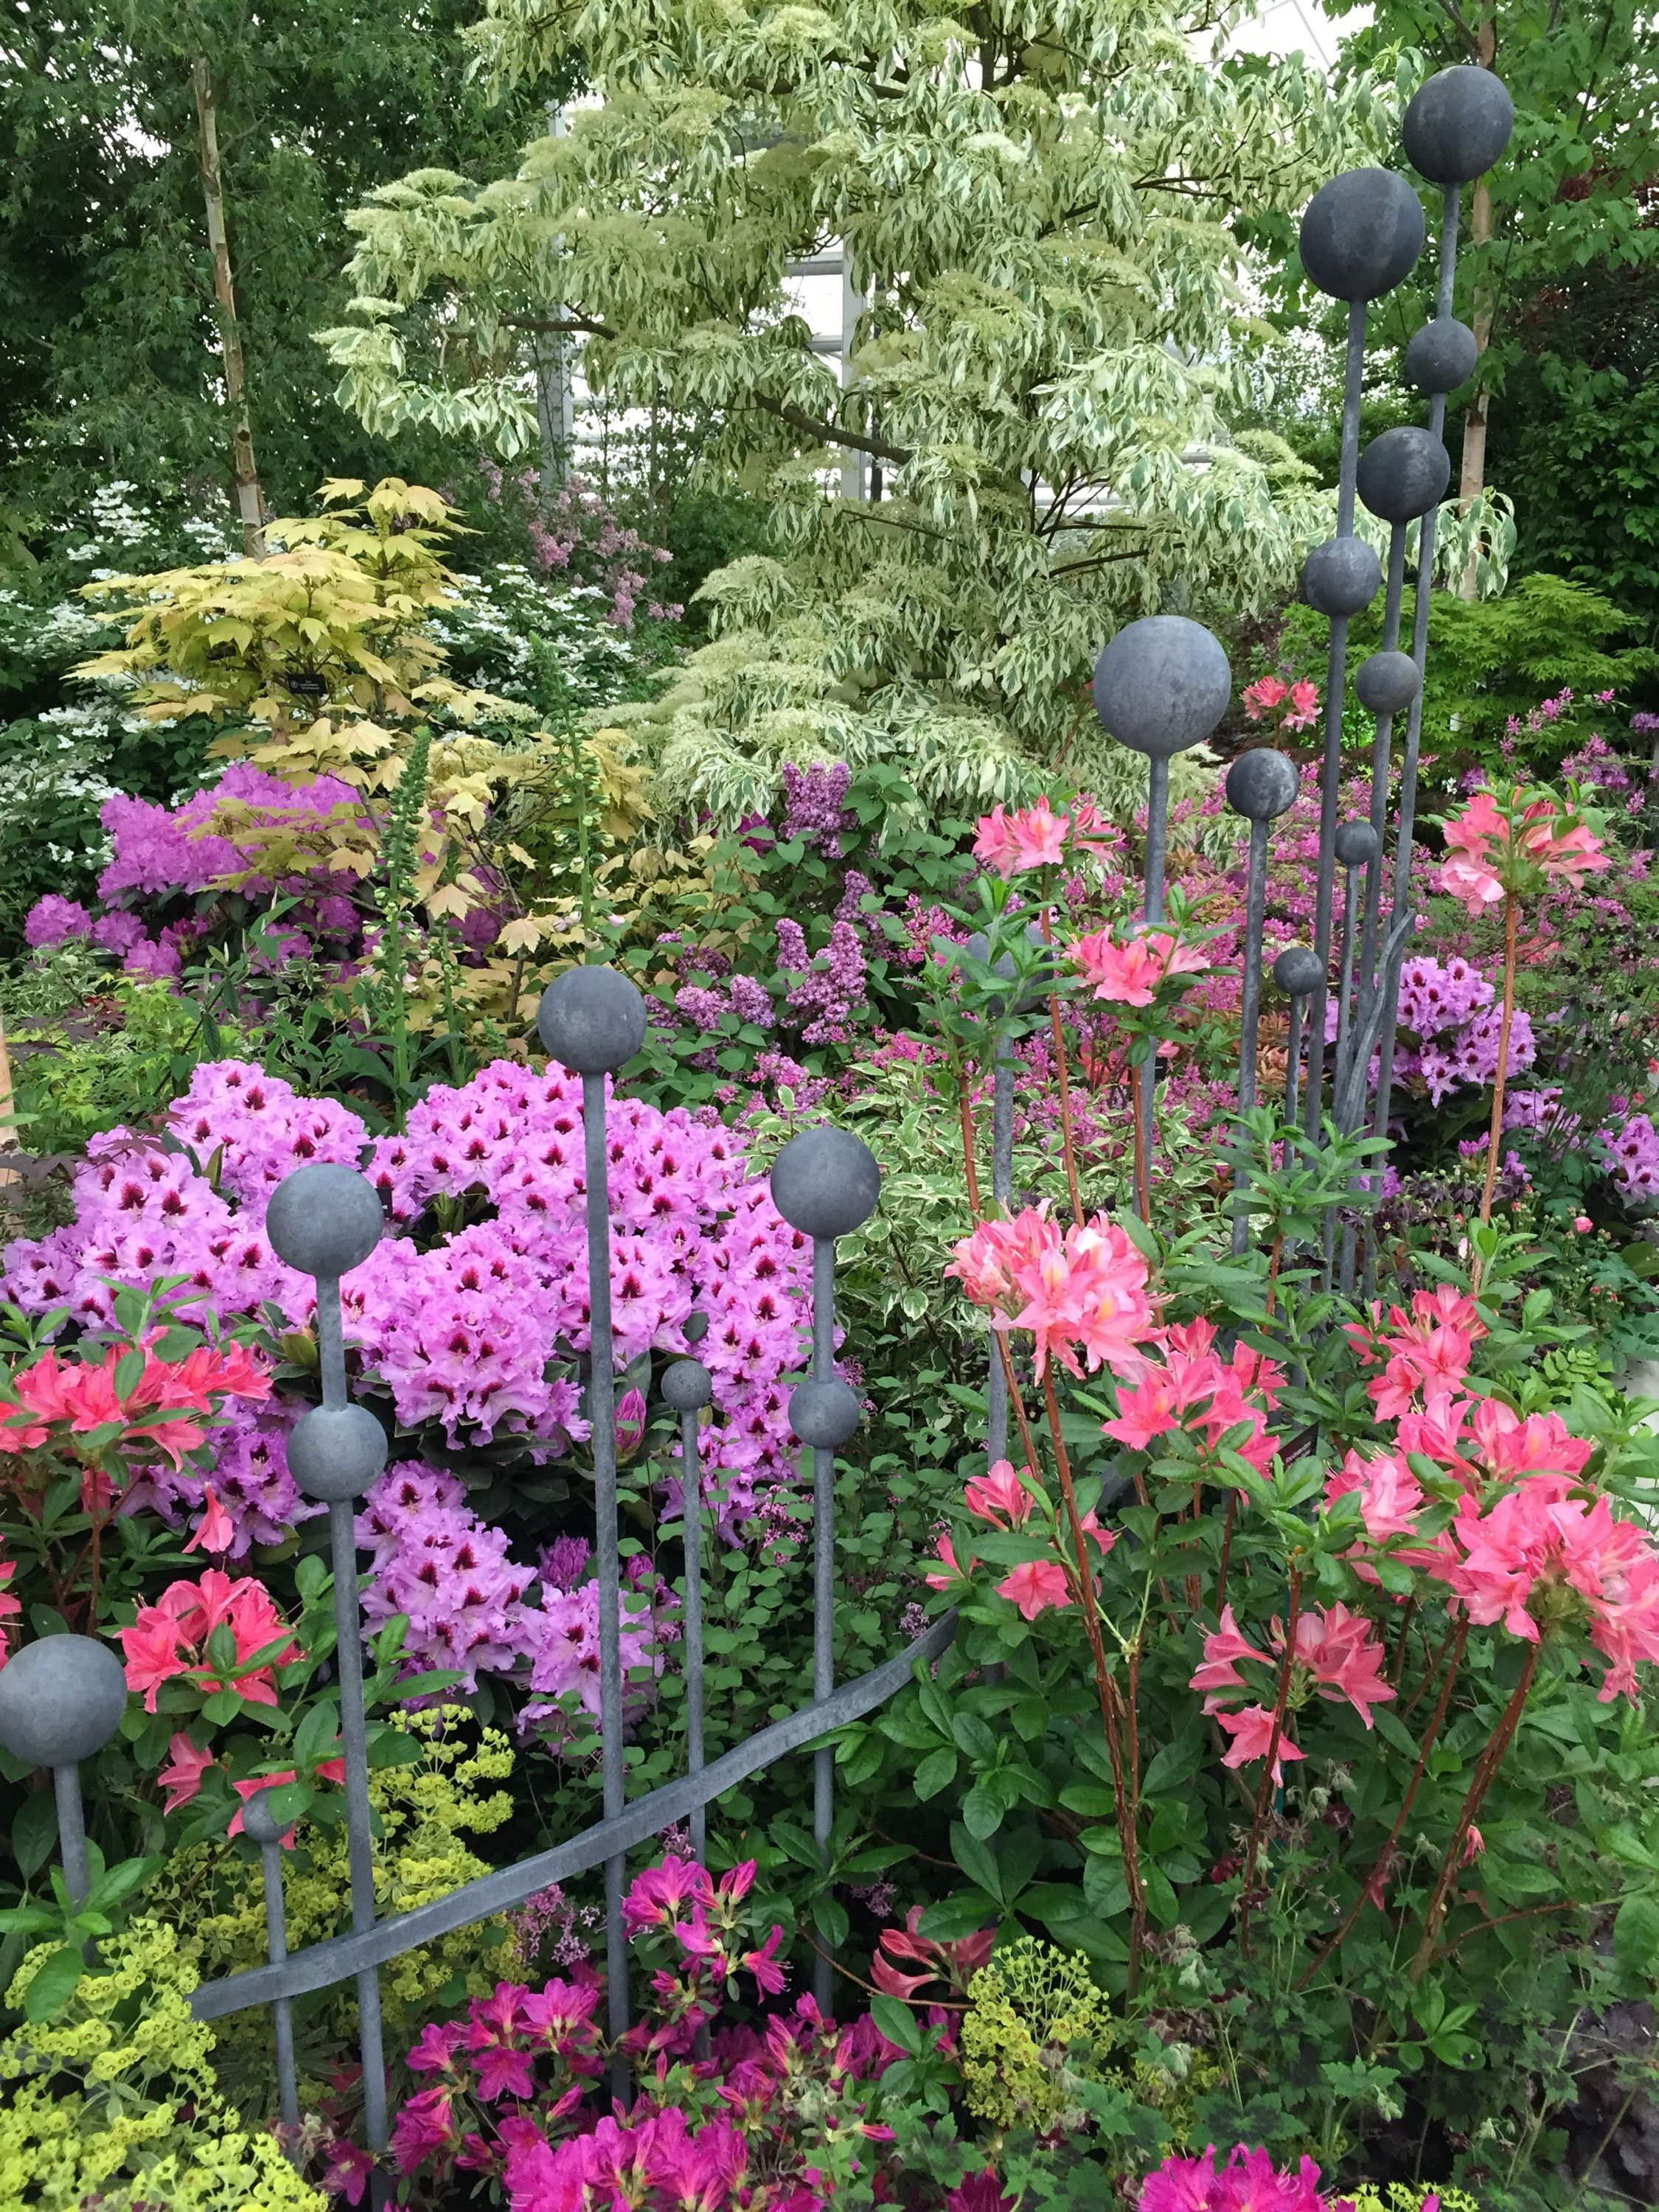 Hilliers Chelsea Flower Show 2015 The Dream Ticket